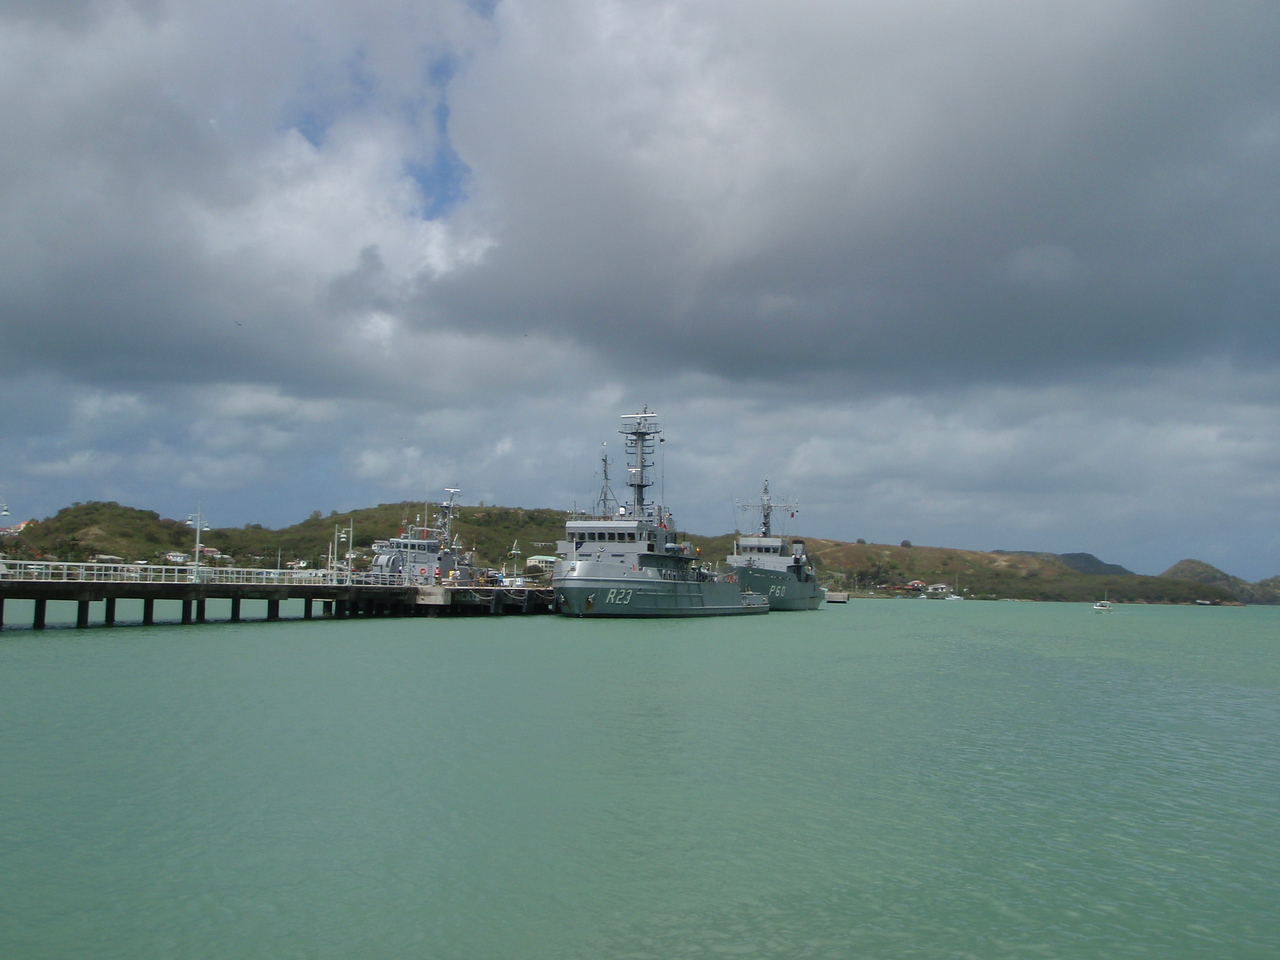 The Antiguan Navy?